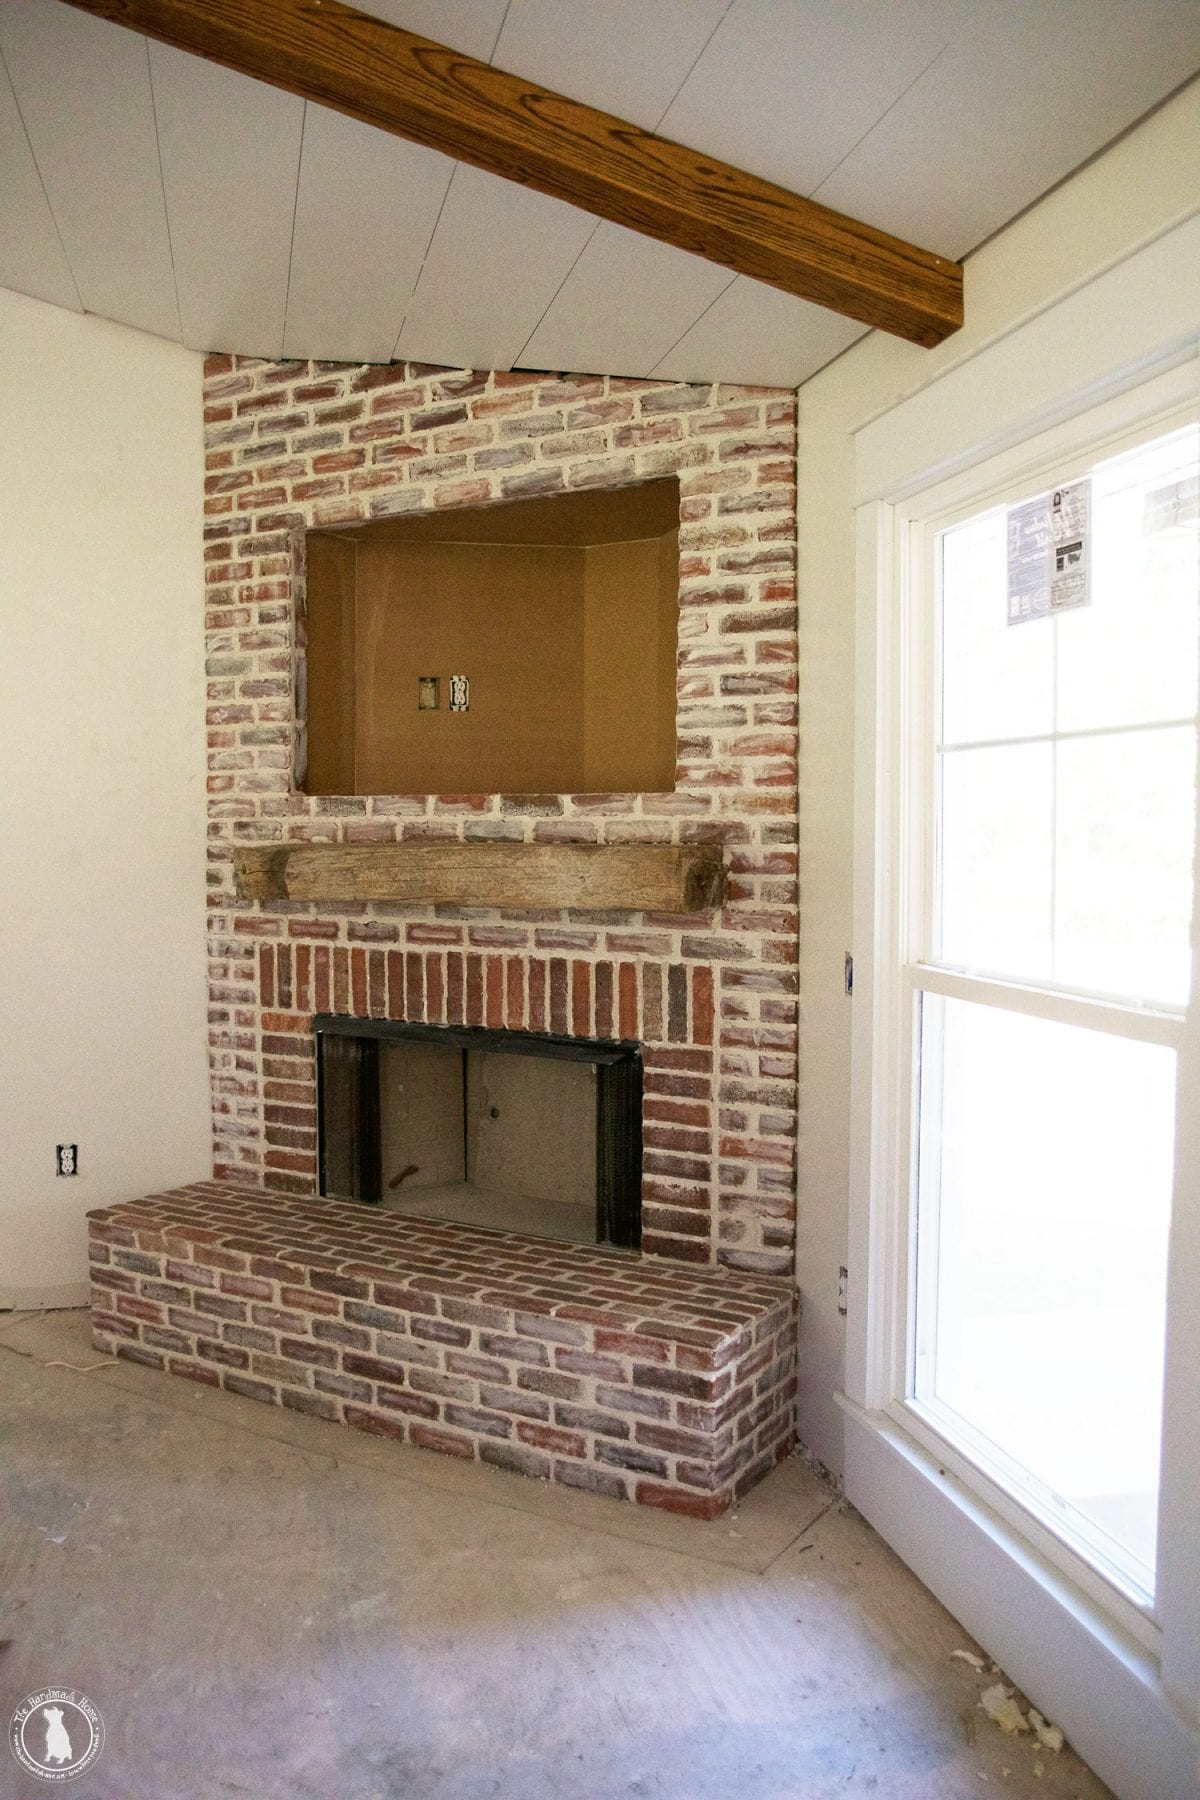 How To Mortar Rub Brick On A Fireplace The Handmade Home